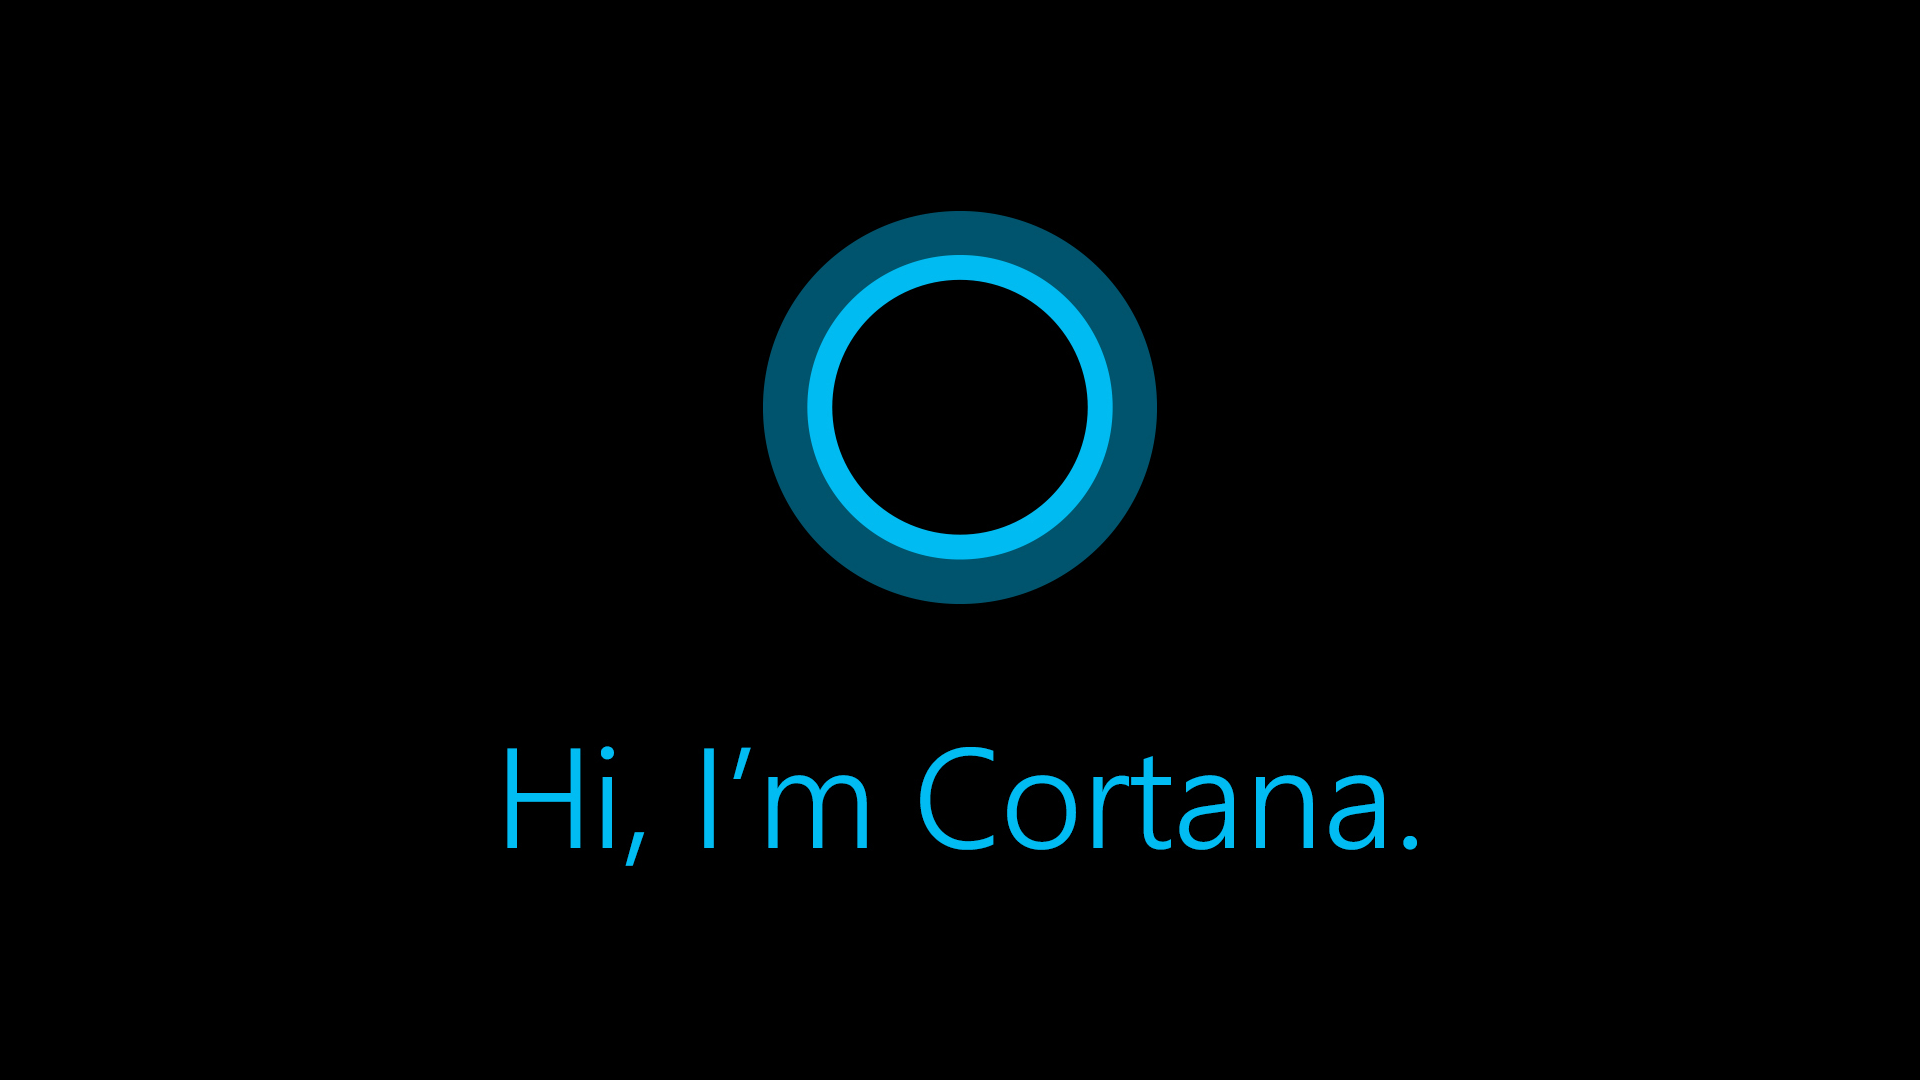 Désactiver Cortana sur Windows 10